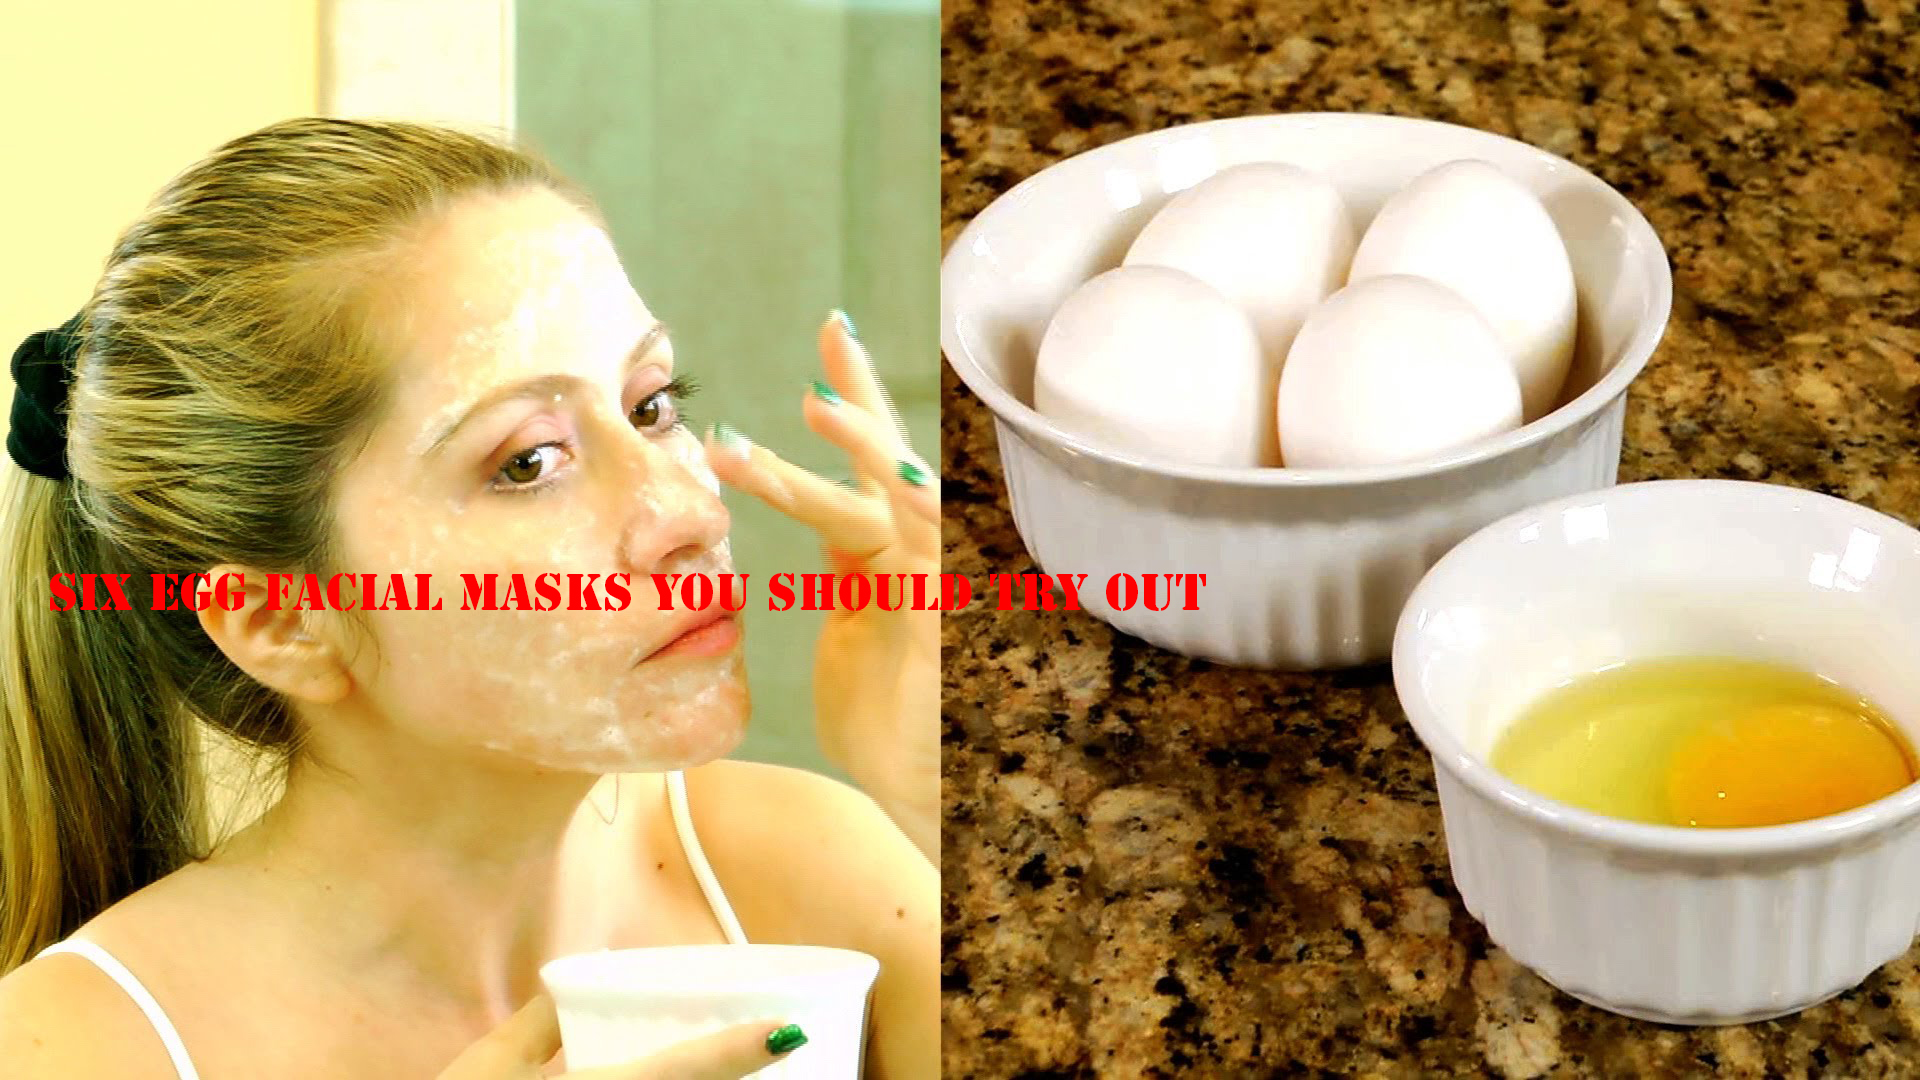 six egg facial masks you should try out